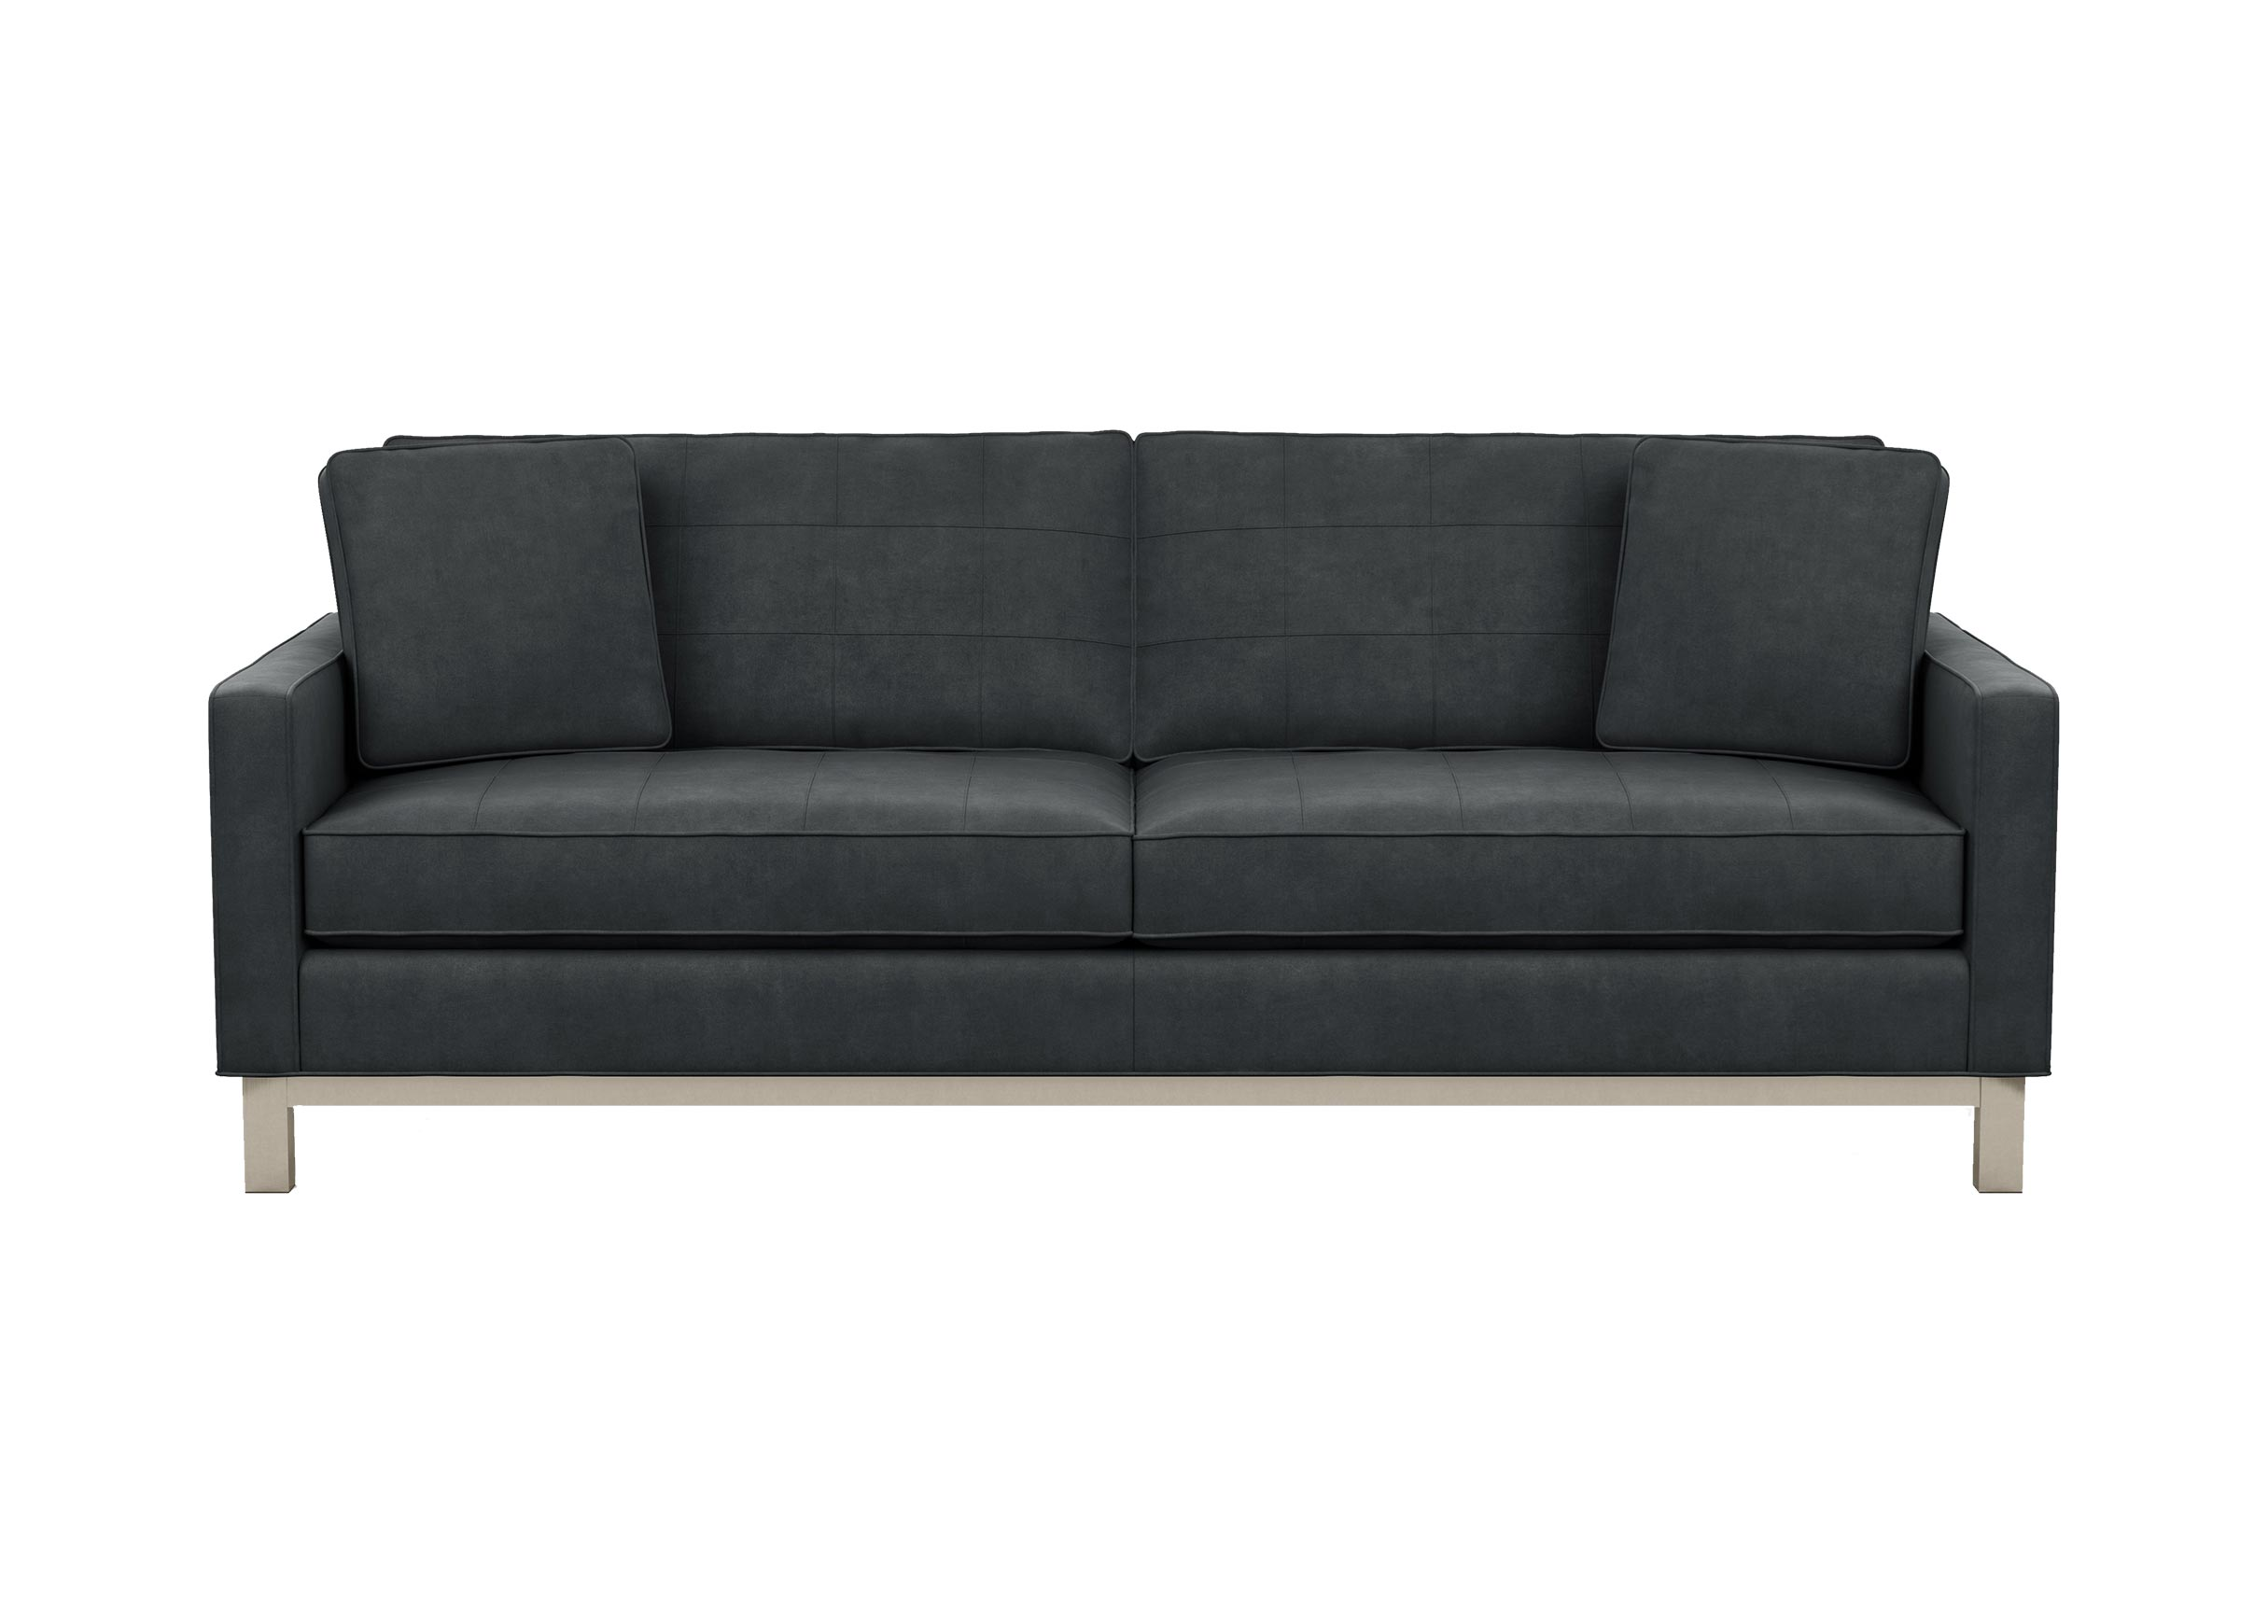 Swell Melrose Sofa Sofas Loveseats Ethan Allen Gmtry Best Dining Table And Chair Ideas Images Gmtryco